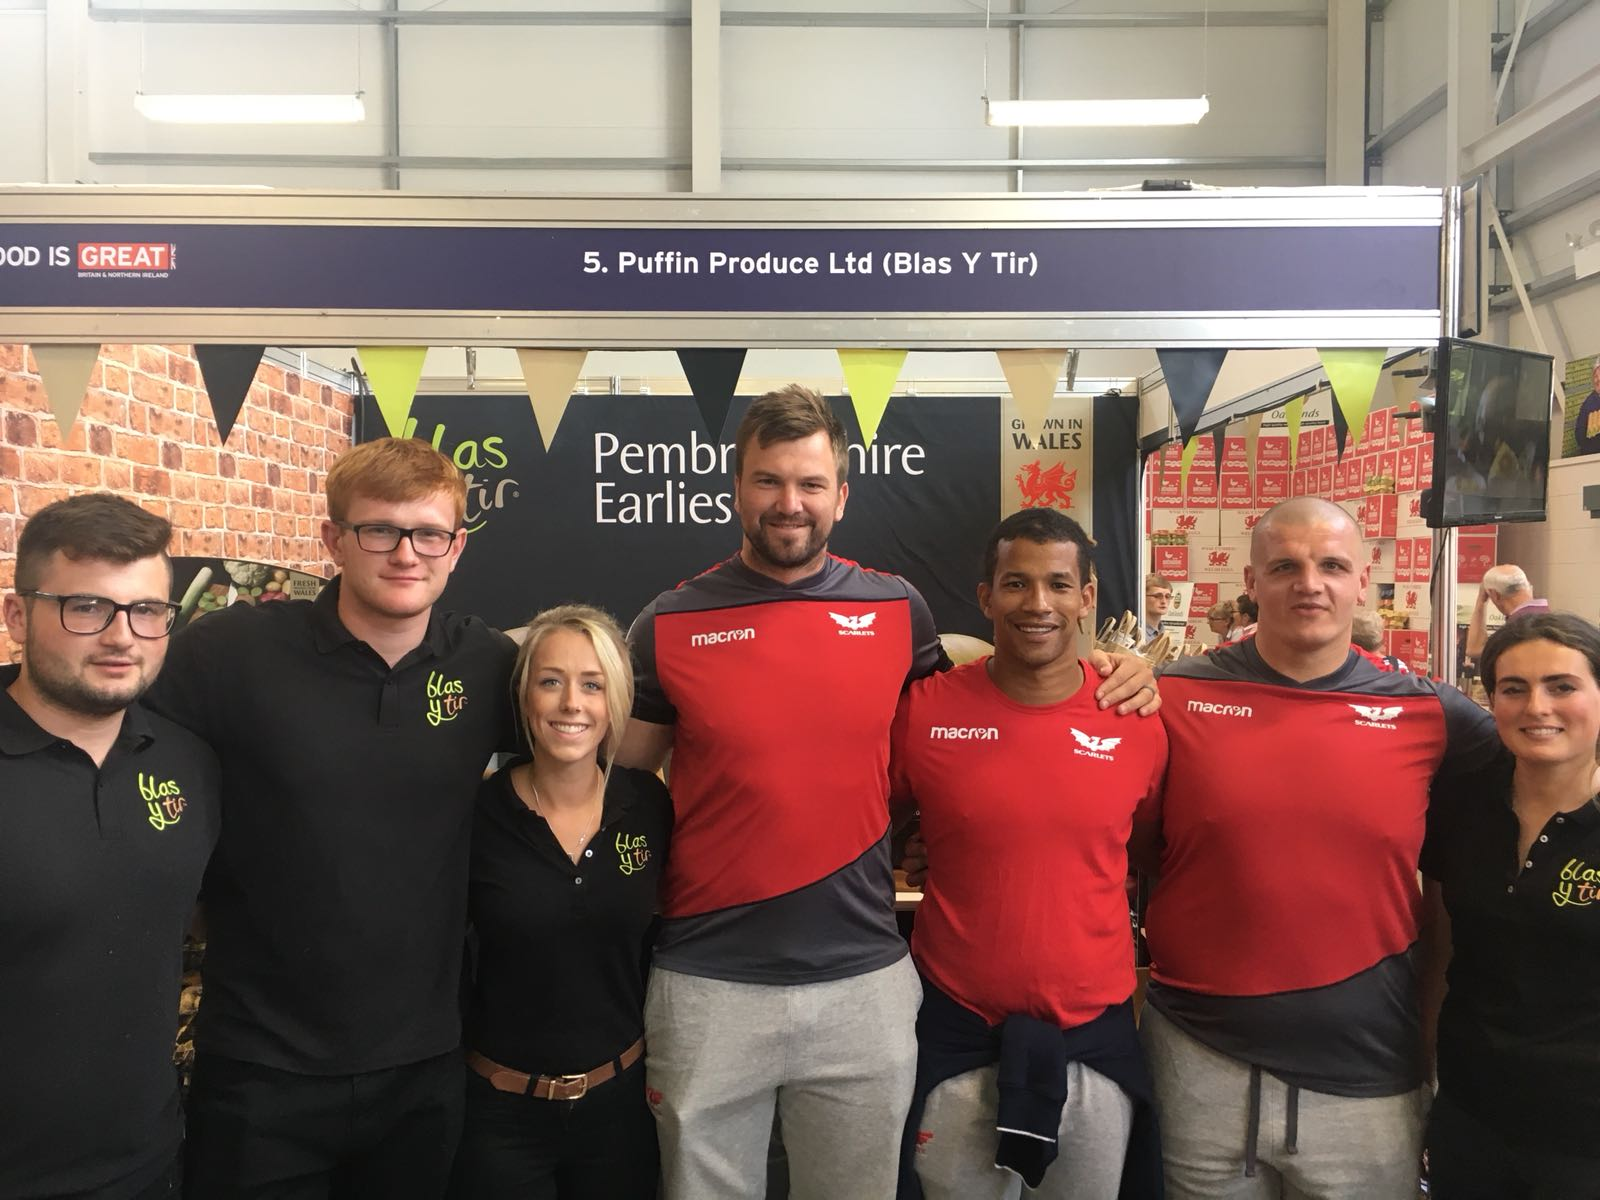 Scarlets Rugby Team visiting the Blas y Tir stand at the Royal Welsh Show 2018